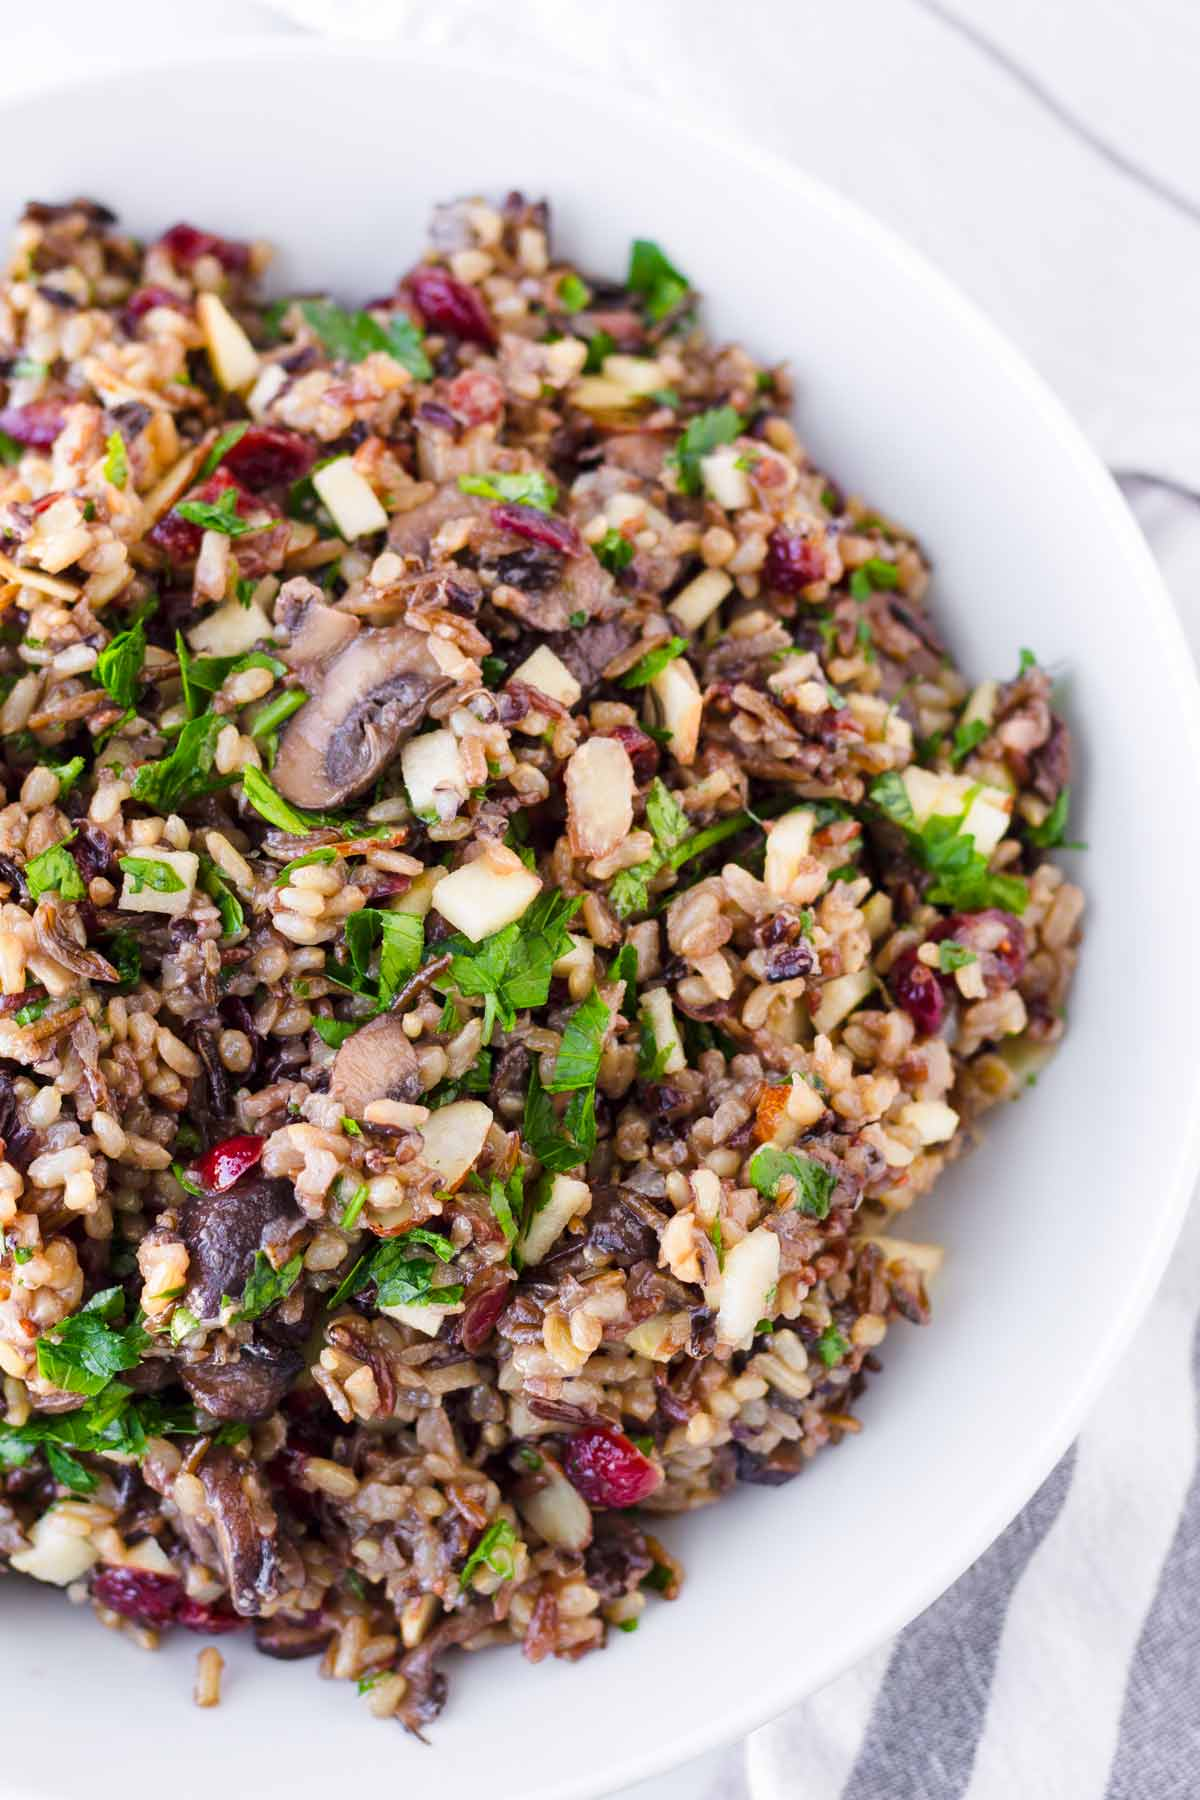 close up of garnished wild rice pilaf with mushrooms, apples, cranberries